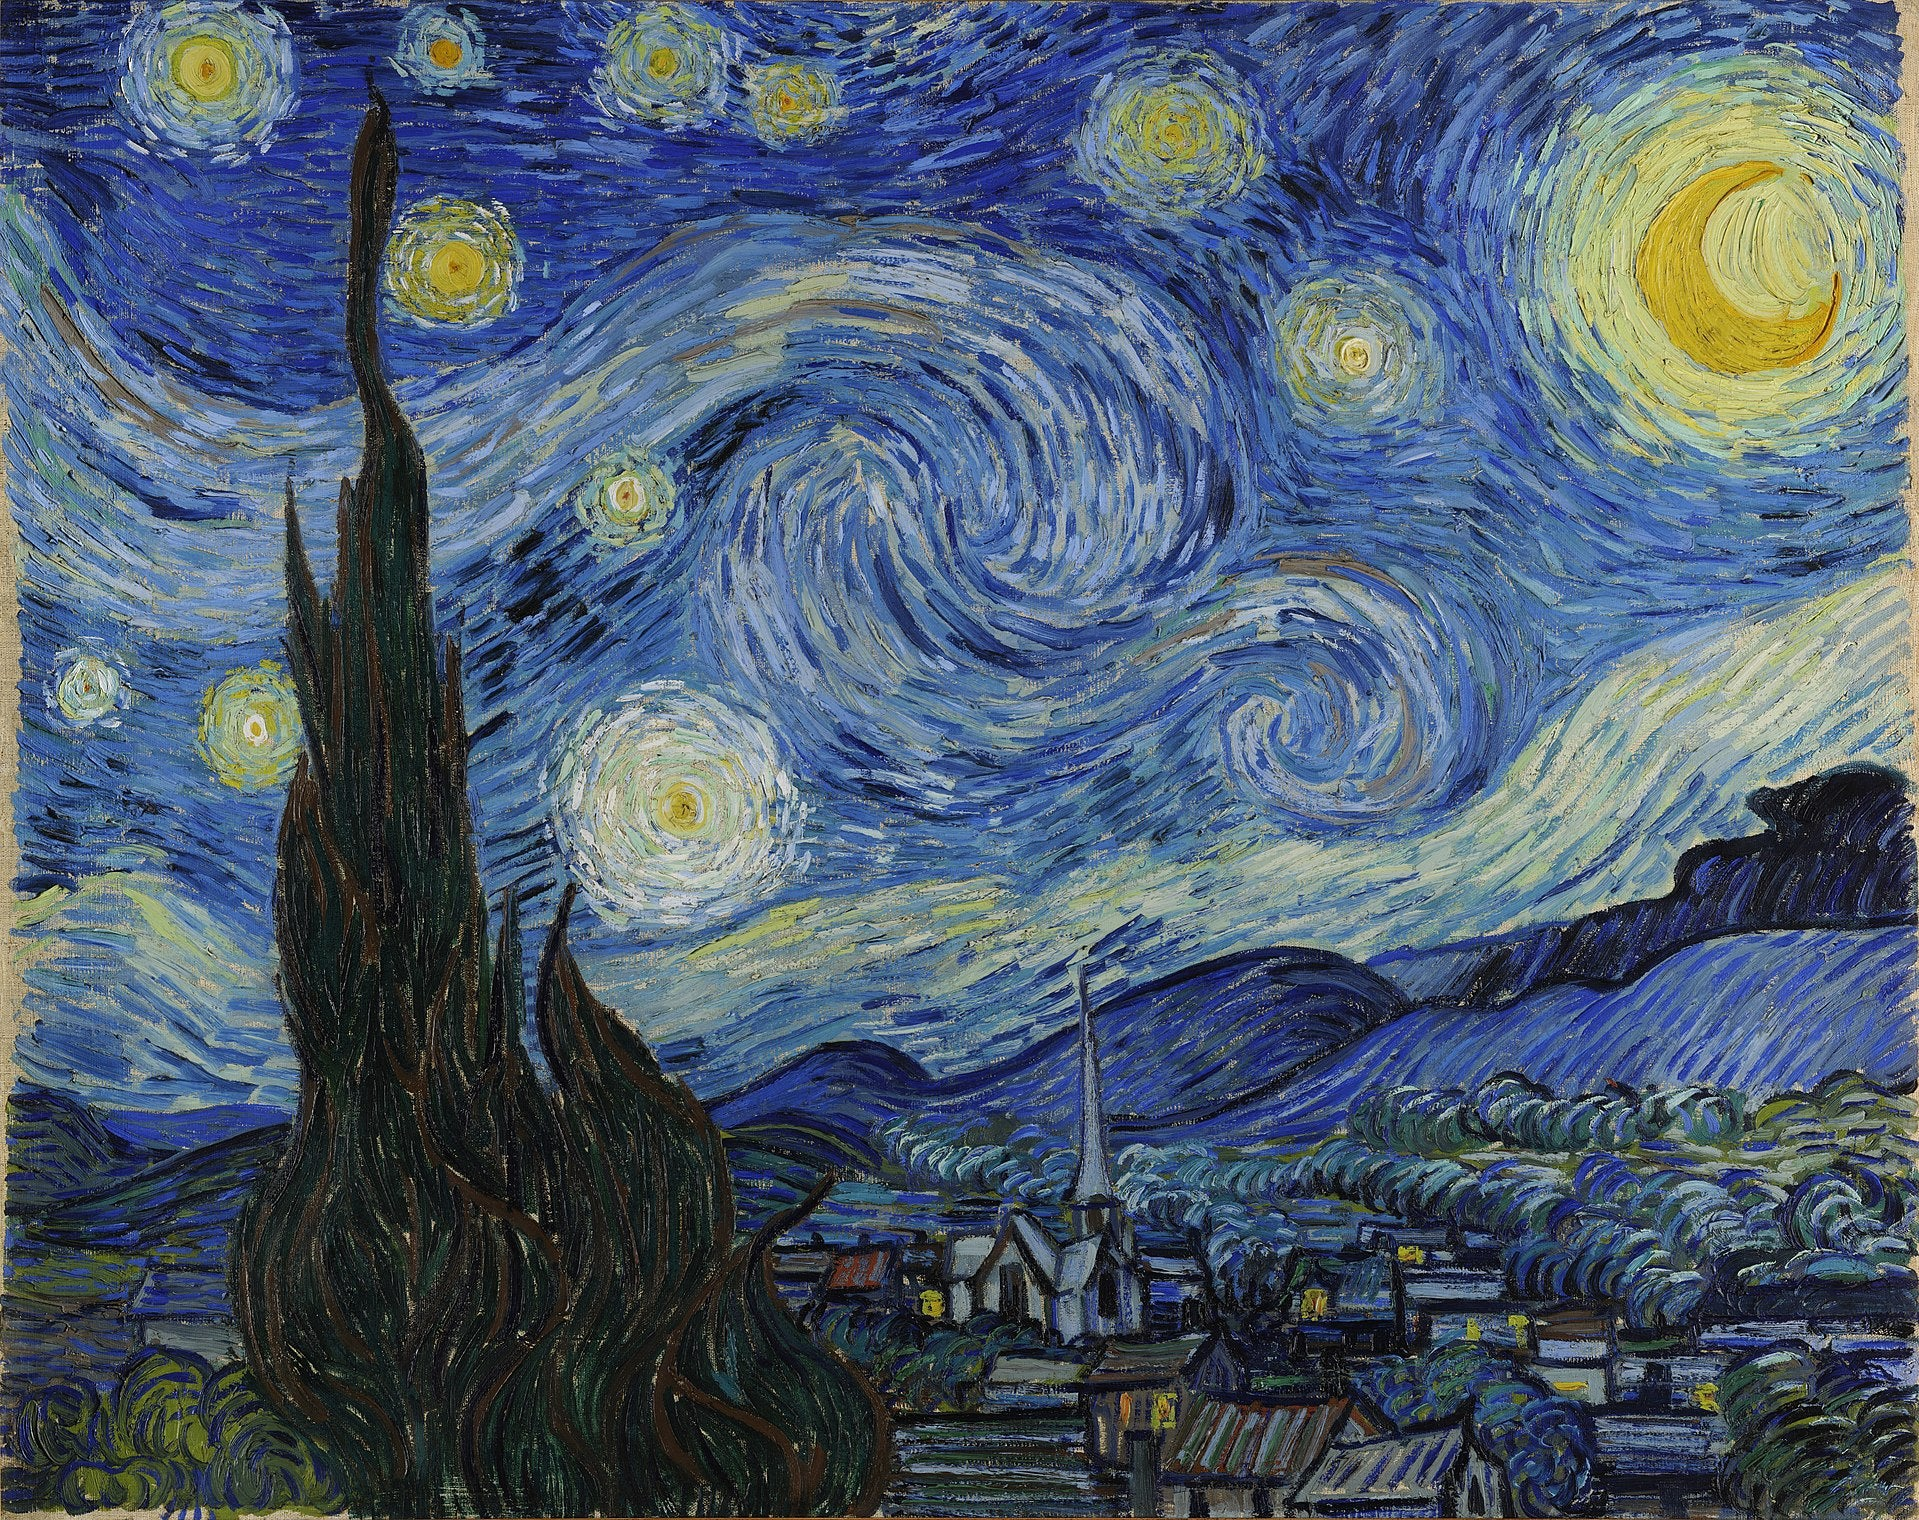 Vincent van Gogh's The Starry Night (1889) at The Museum of Modern Art, New York